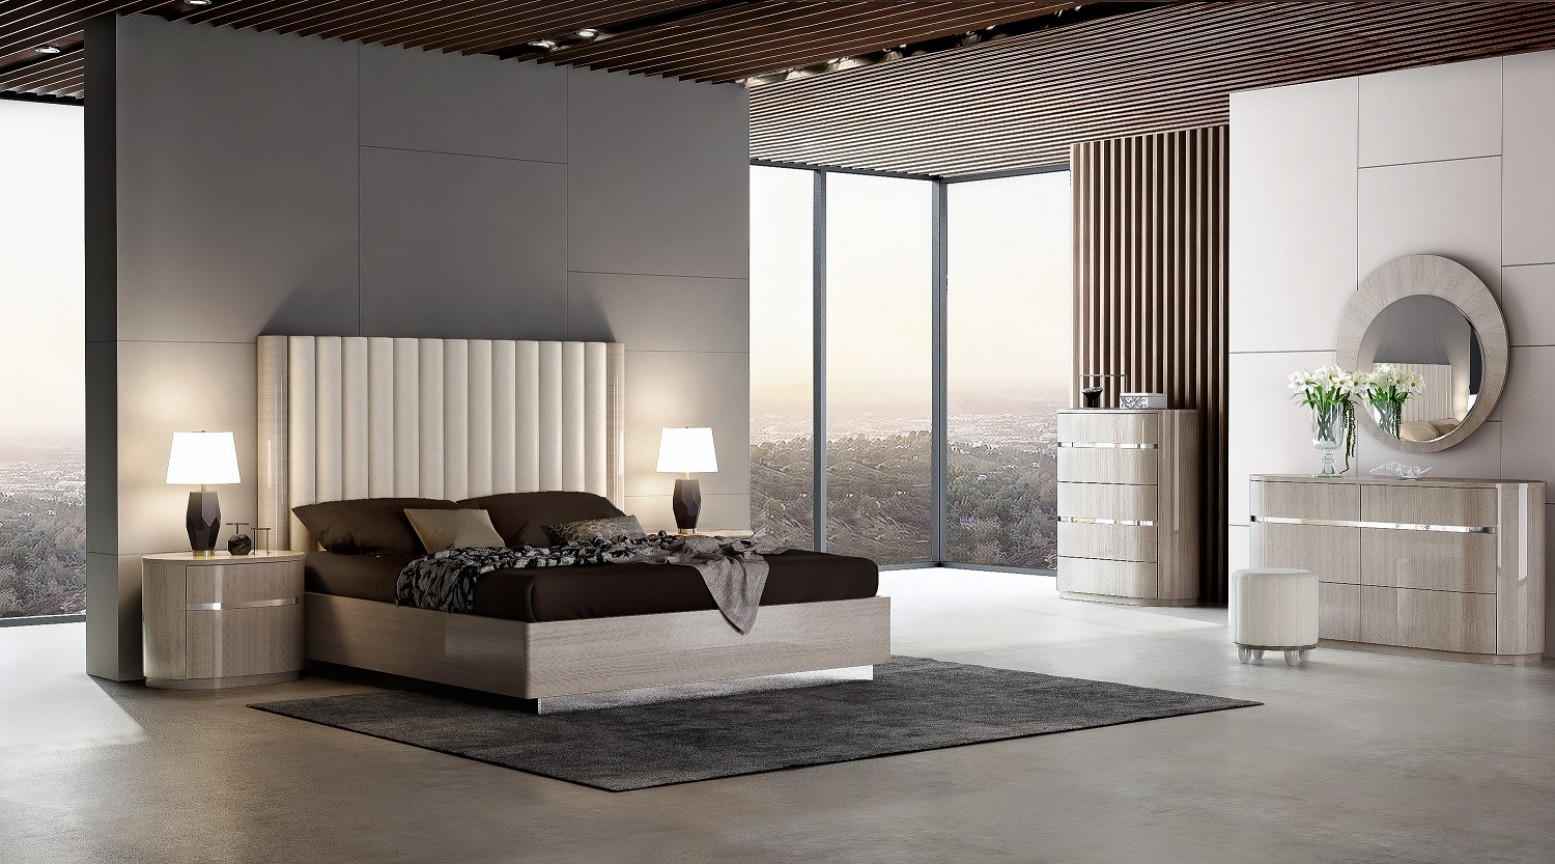 Giorgio Modern Bedroom Set with Modern Bedroom Collections